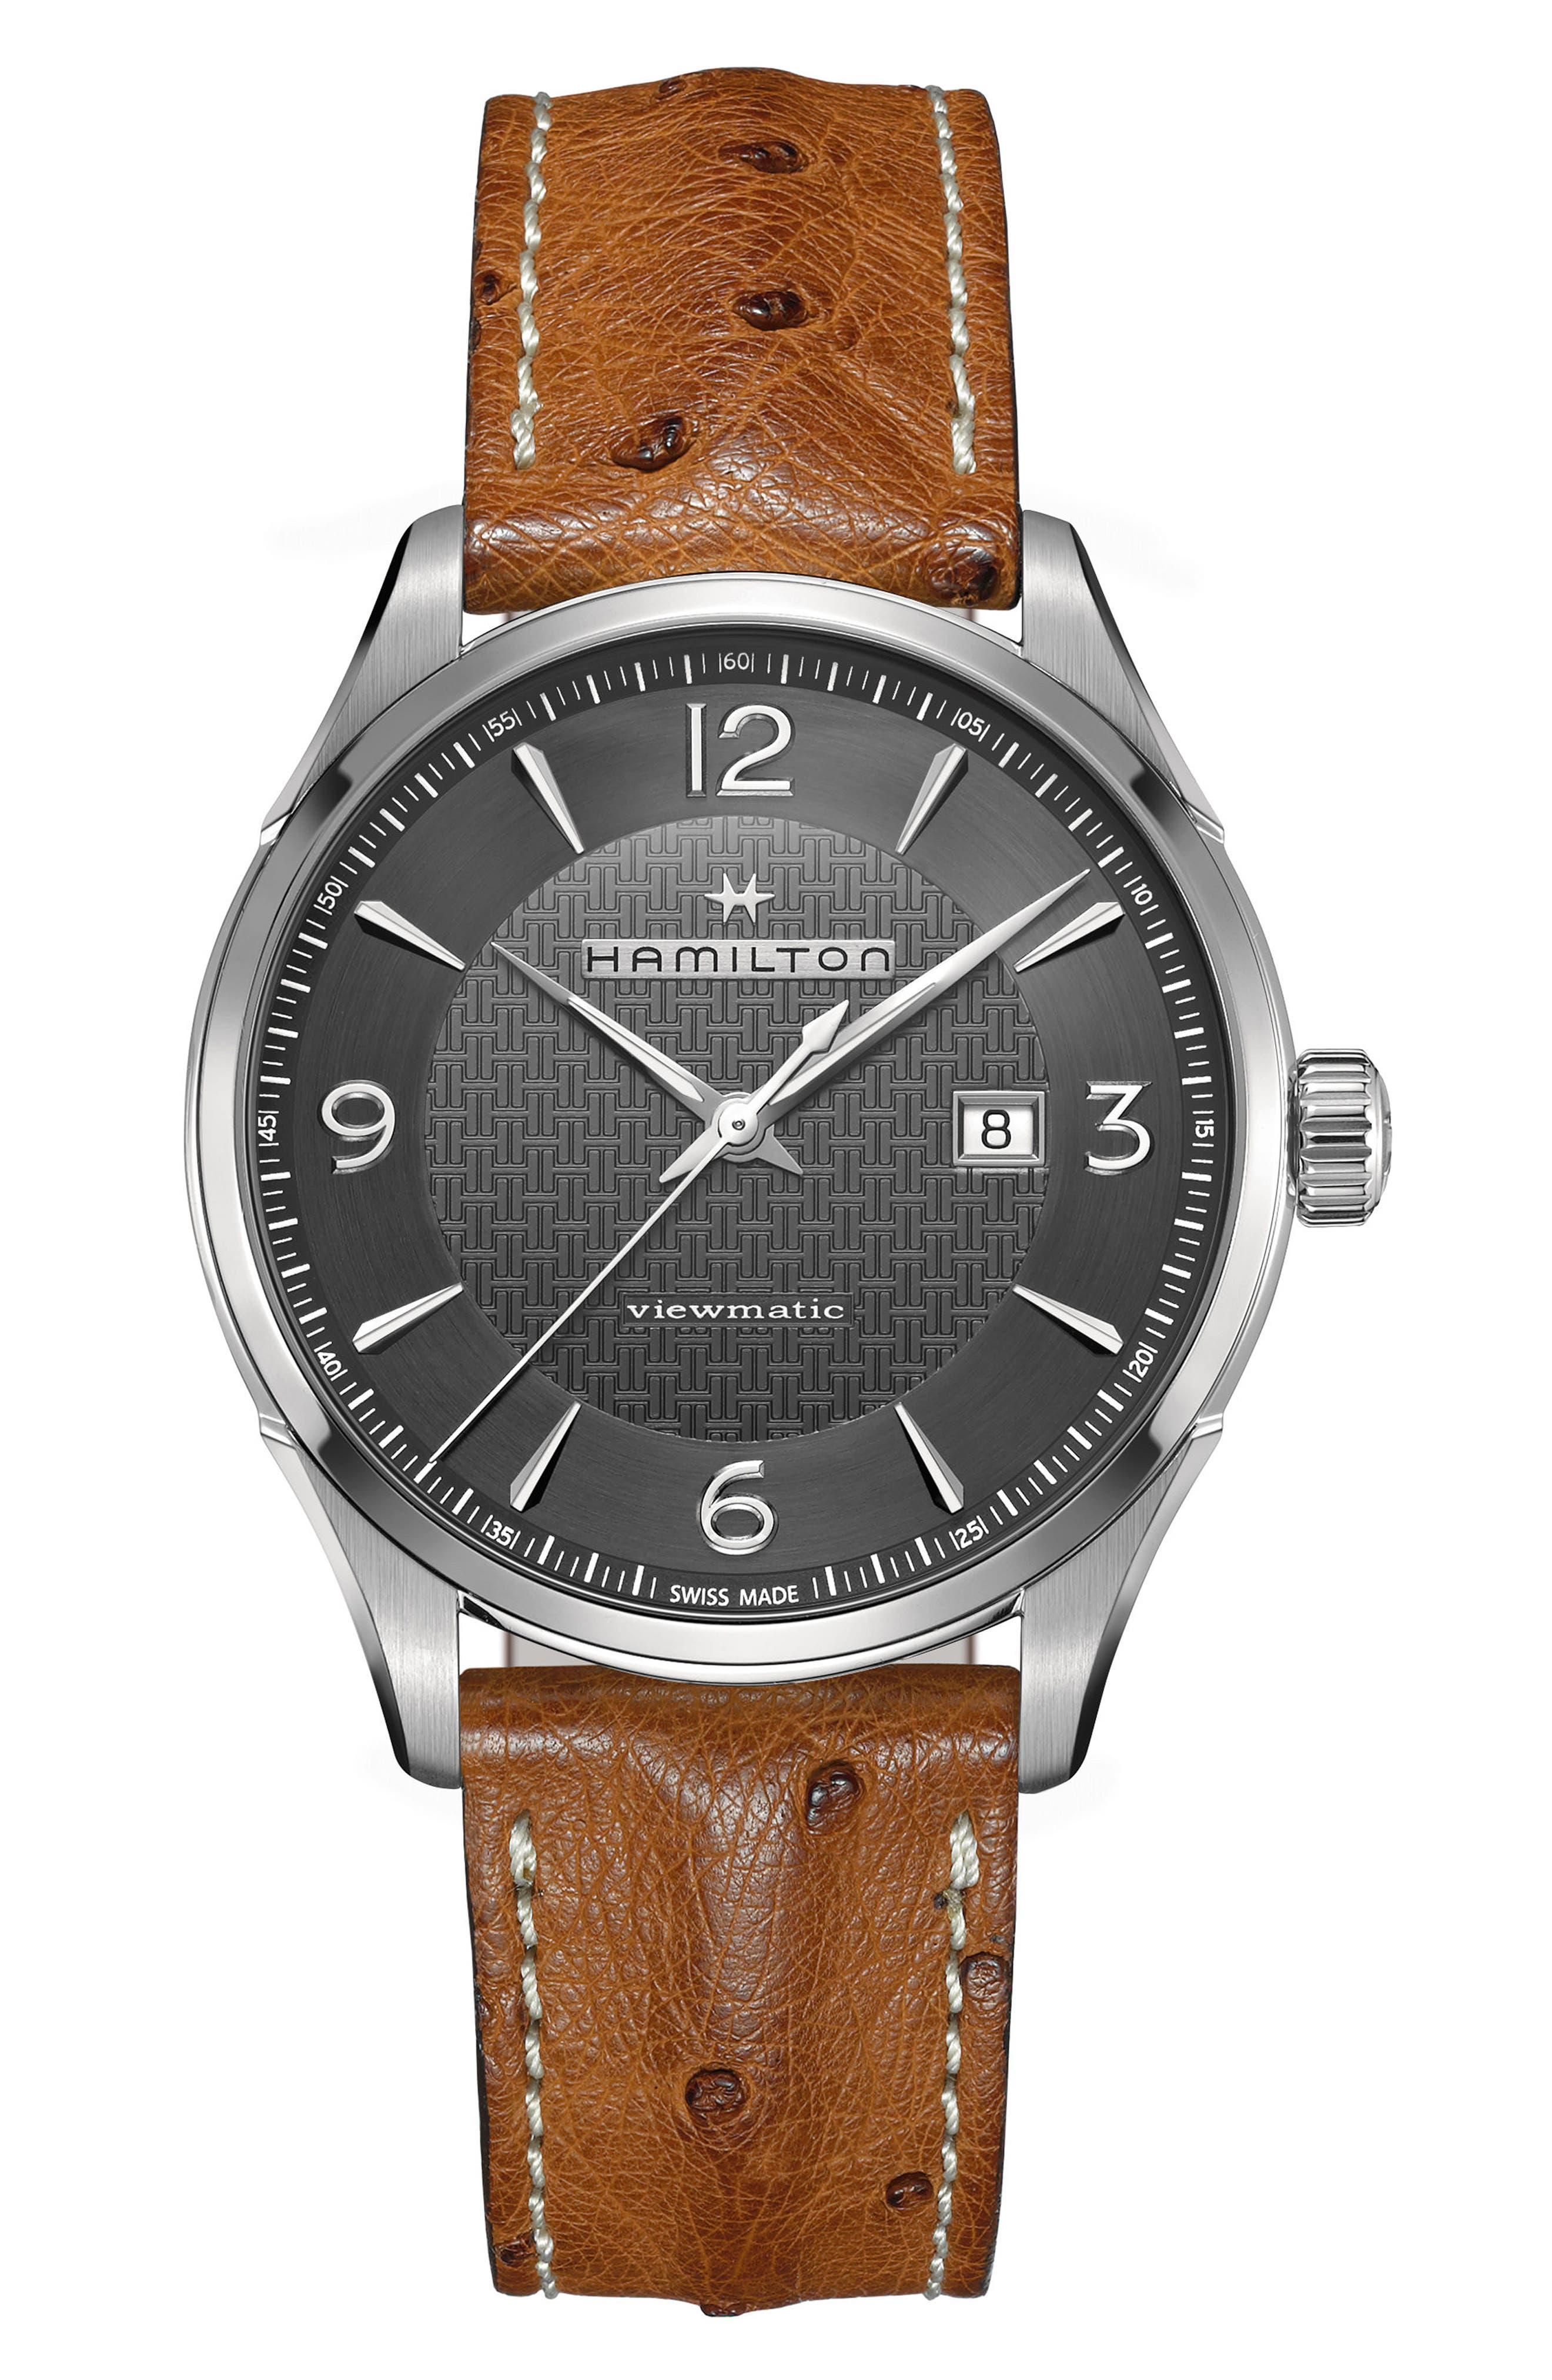 Main Image - Hamilton Jazzmaster Viewmatic Auto Ostrich Leather Strap Watch, 44mm